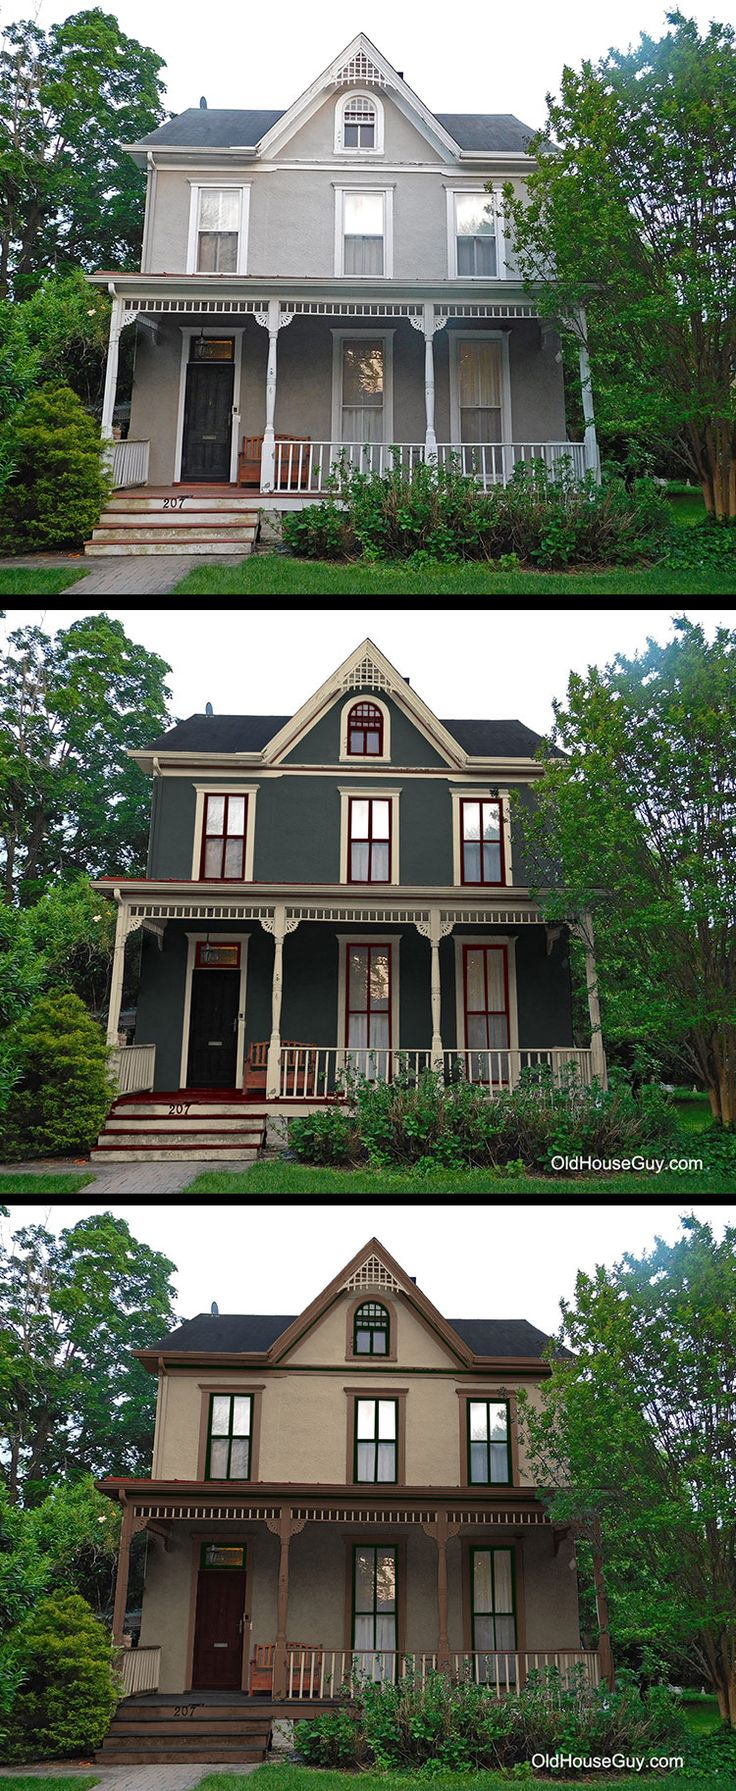 Are You Looking For Help With Historic House Restoration Colors Or How To Start A Curb Appeal Makeover Design Services And Consulting By